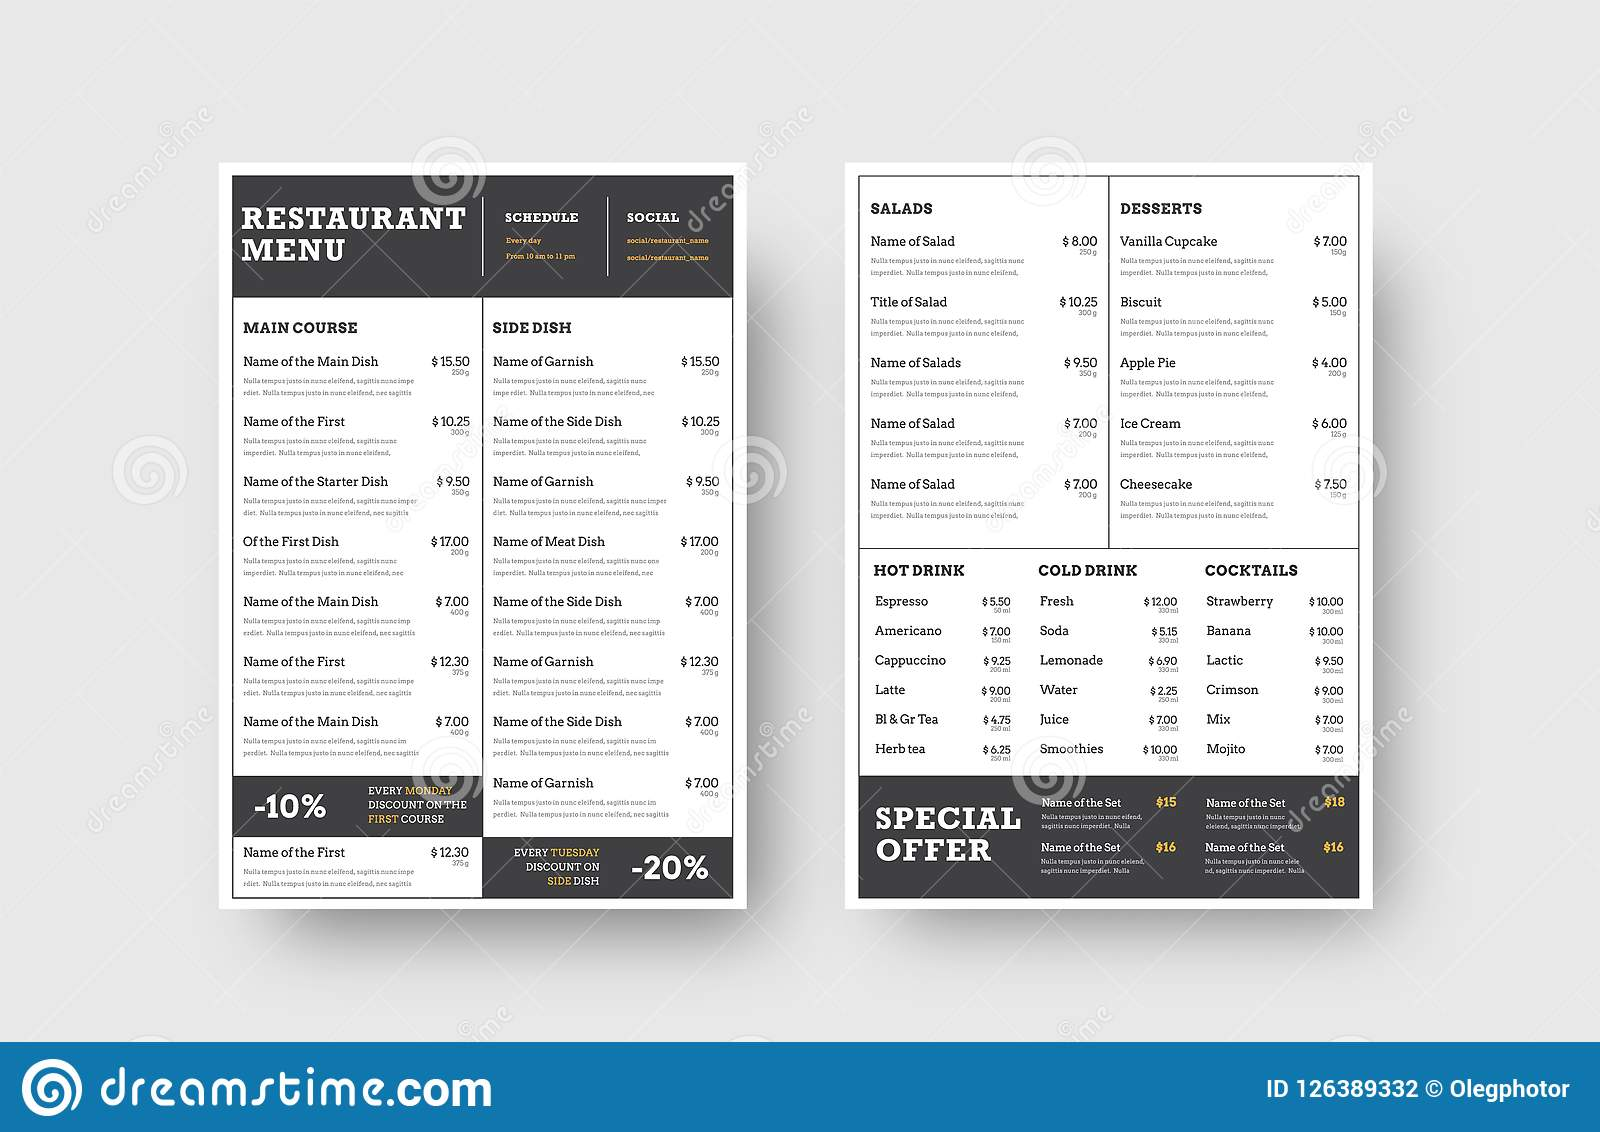 design the front and back pages of the menu for a restaurant or